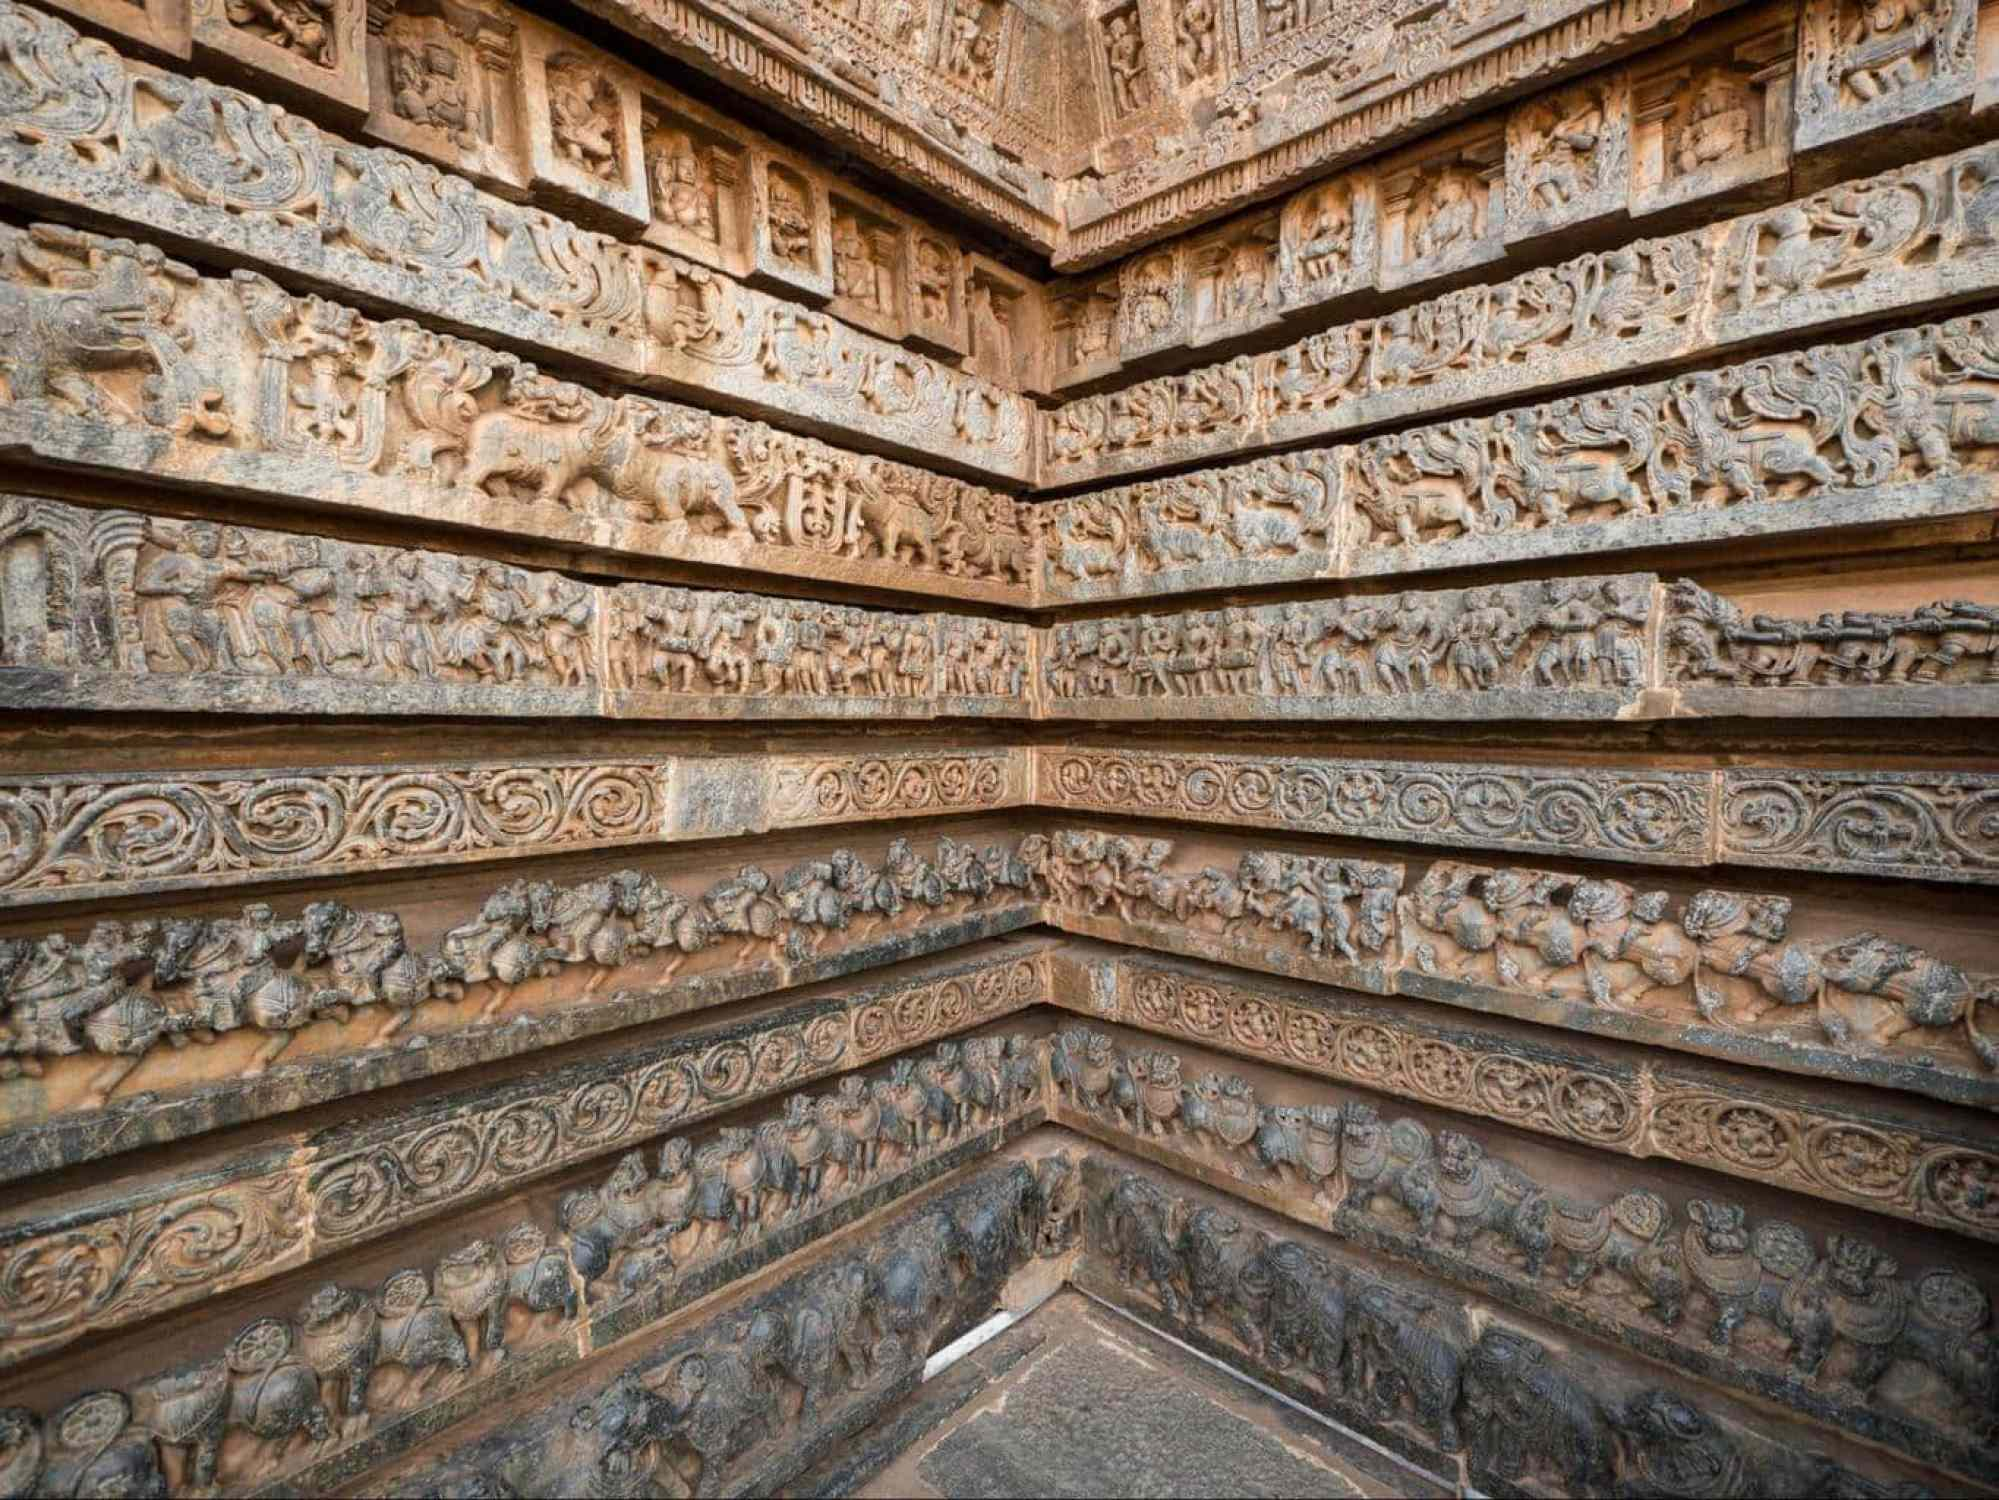 Halebidu outer walls covered with intricate carvings